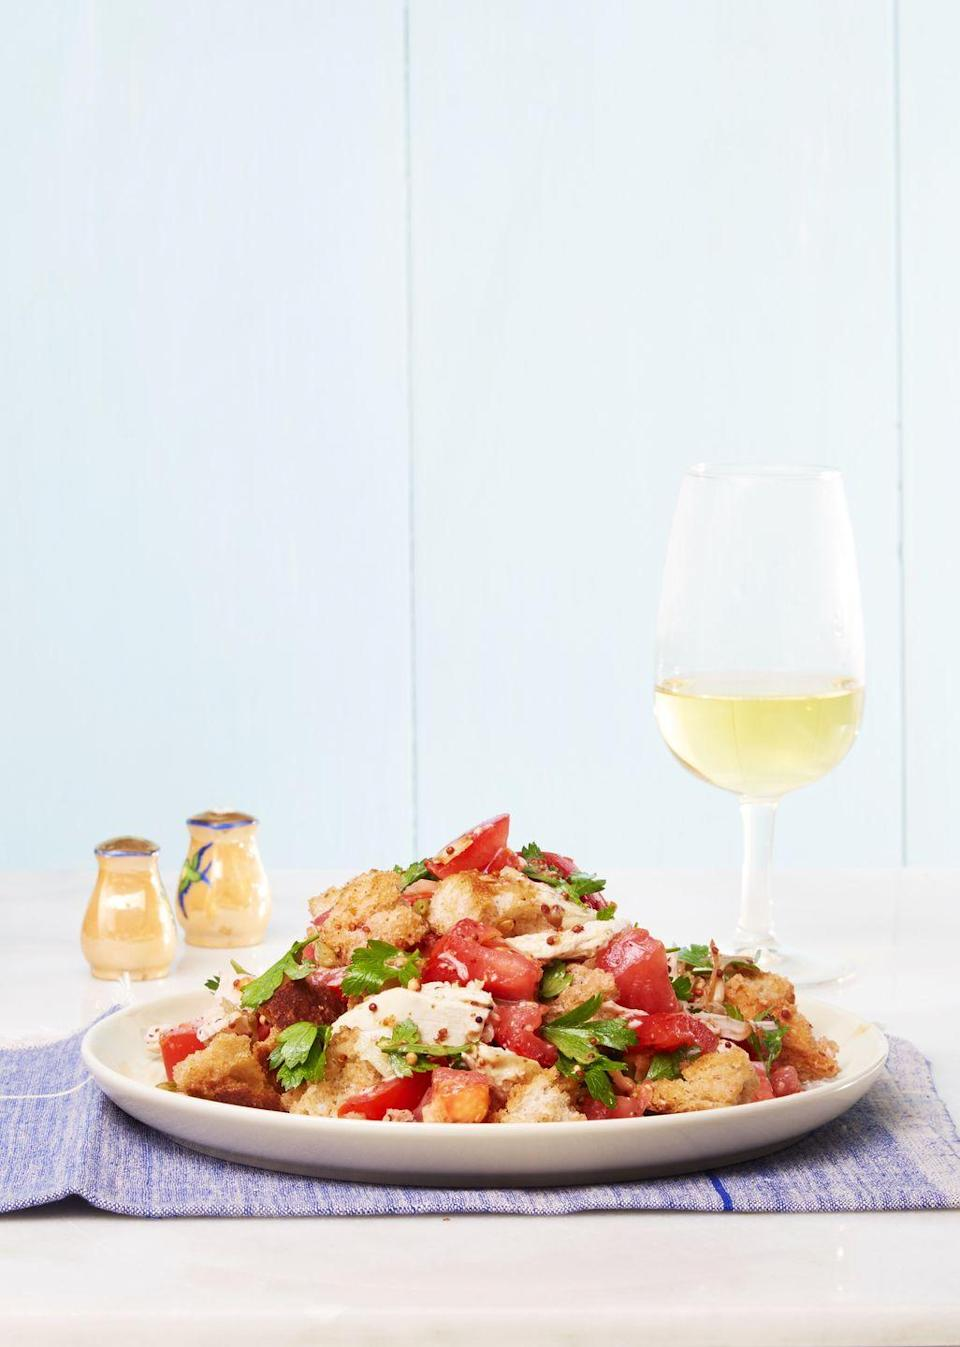 """<p>For when you can't even consider eating another hot meal after Thanksgiving, this bread salad topped with shredded turkey is for you.</p><p><em><a href=""""https://www.goodhousekeeping.com/food-recipes/easy/a33584/easy-chicken-panzanella-recipe/"""" rel=""""nofollow noopener"""" target=""""_blank"""" data-ylk=""""slk:Get the recipe for Easy Turkey Panzanella »"""" class=""""link rapid-noclick-resp"""">Get the recipe for Easy Turkey Panzanella »</a></em></p>"""